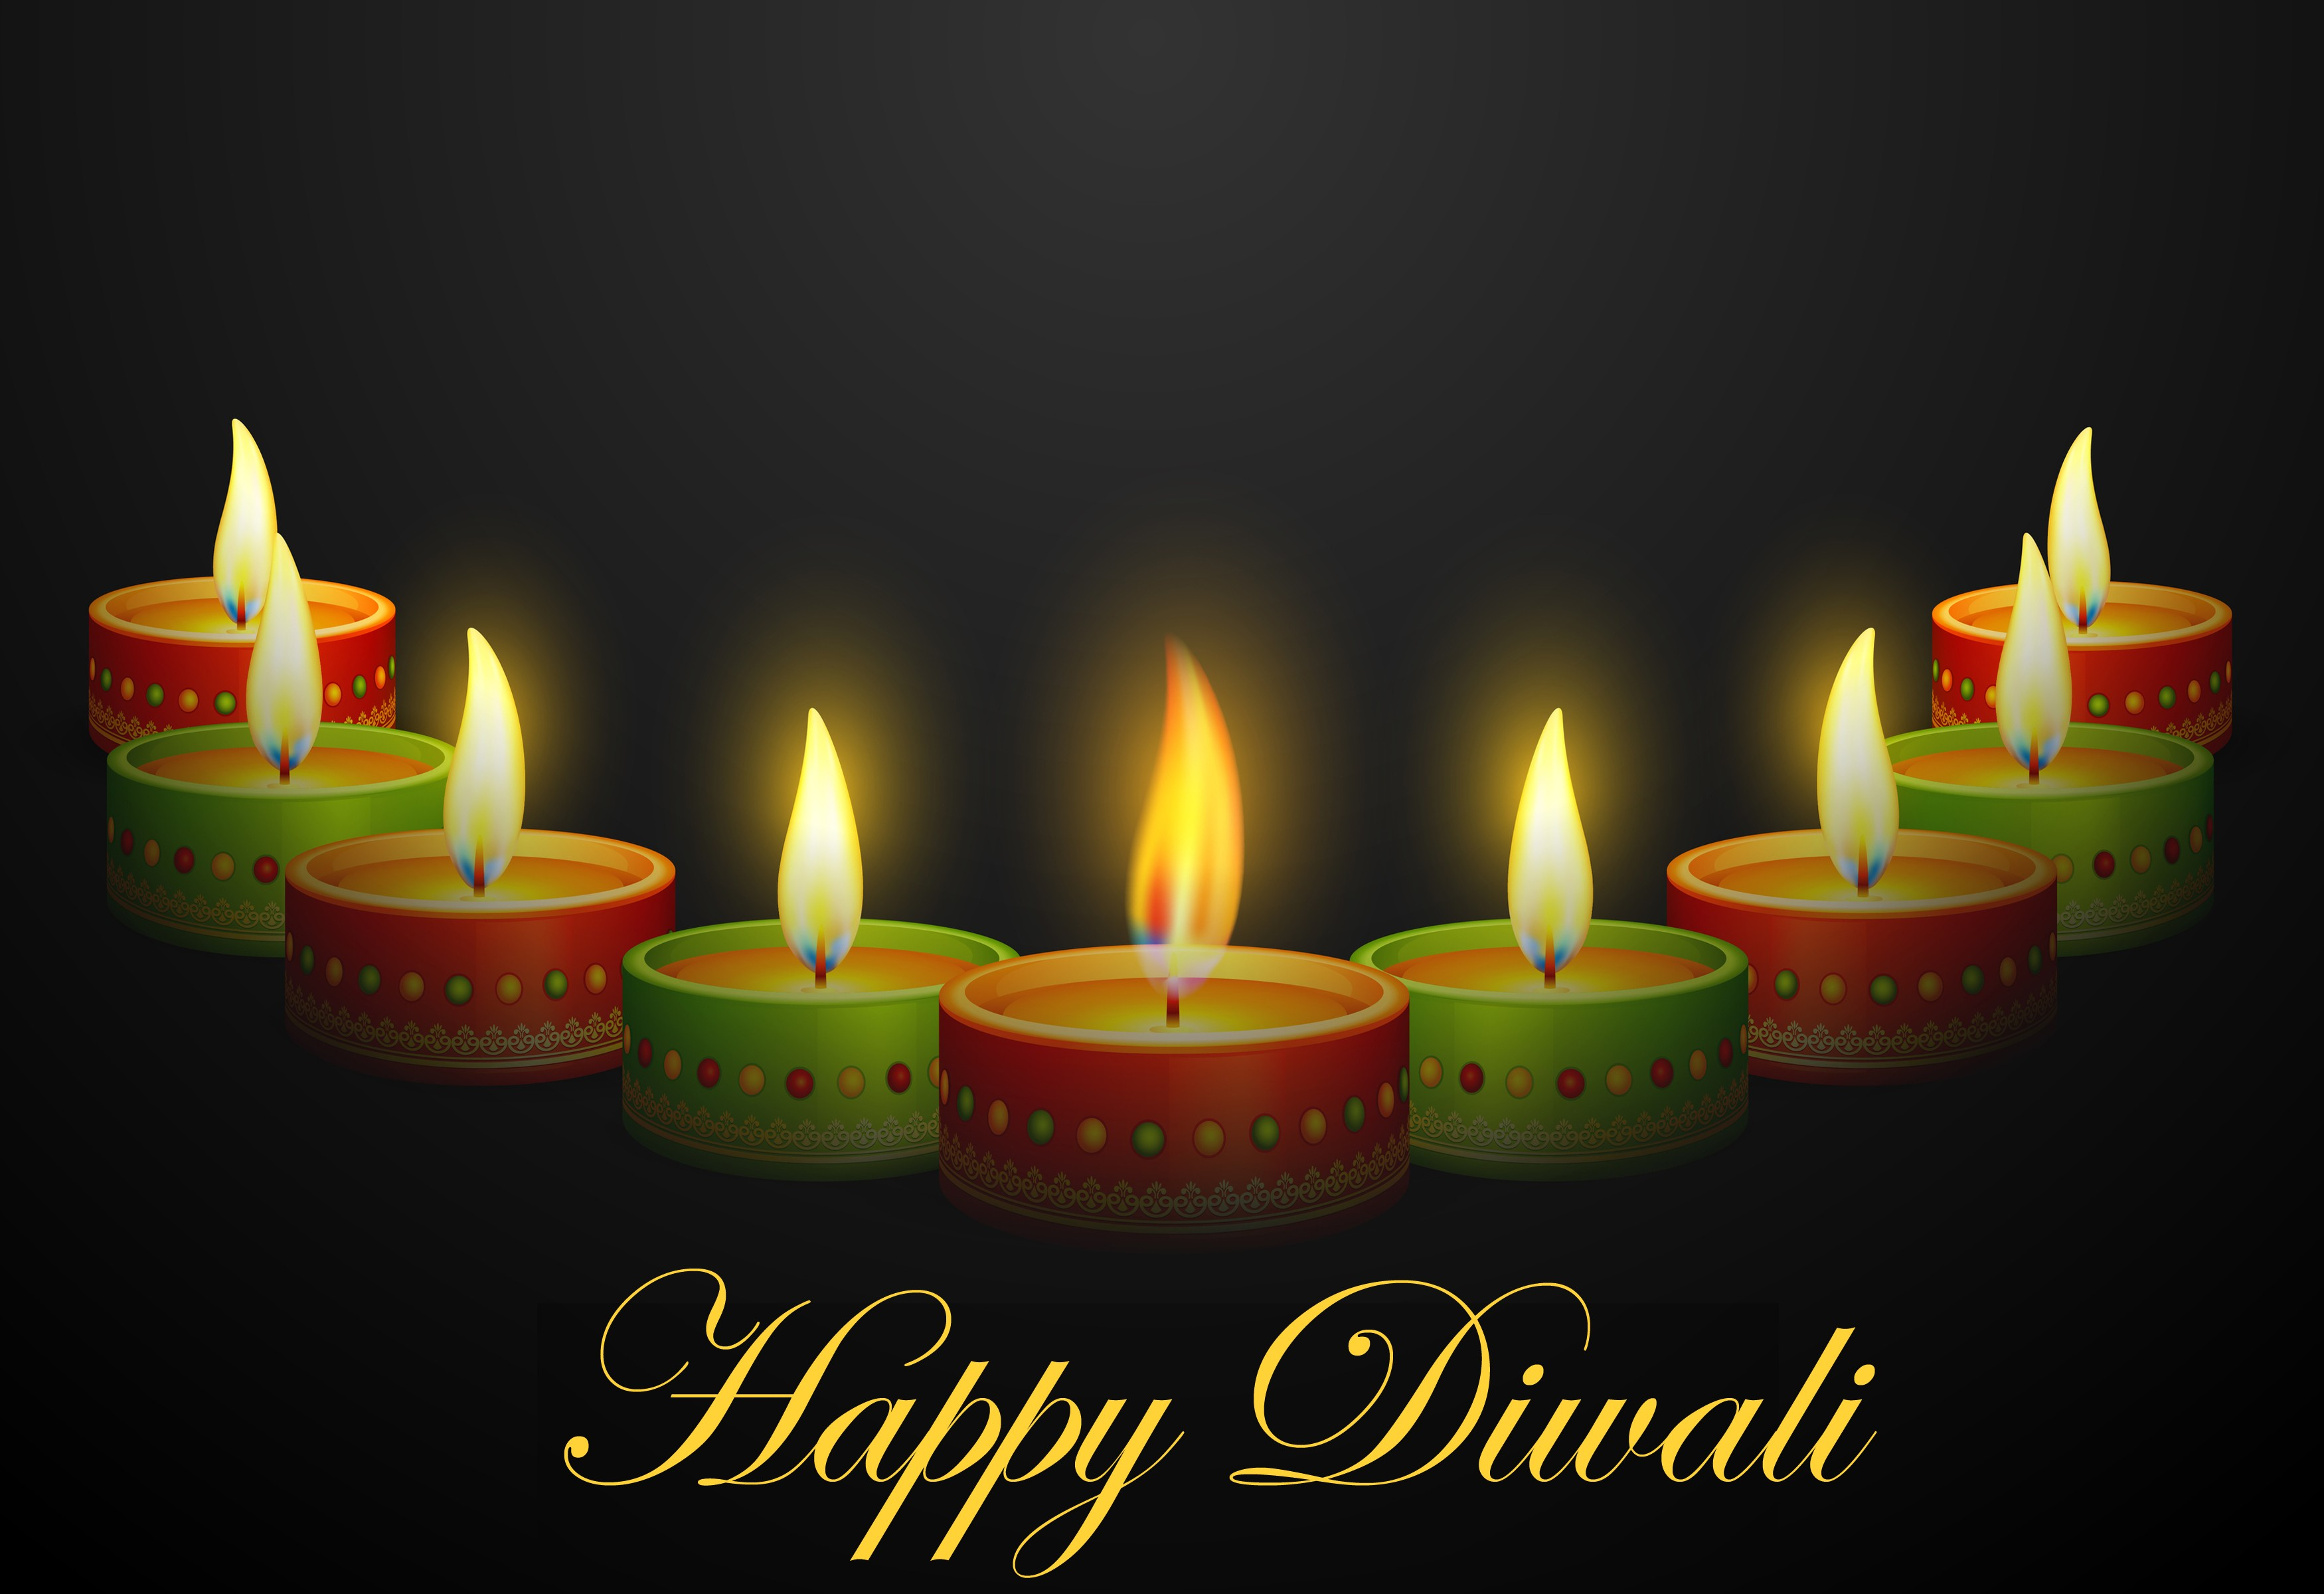 Happy diwali photos diwali pictures diwali images diwali photo wallpapers kristyandbryce Gallery